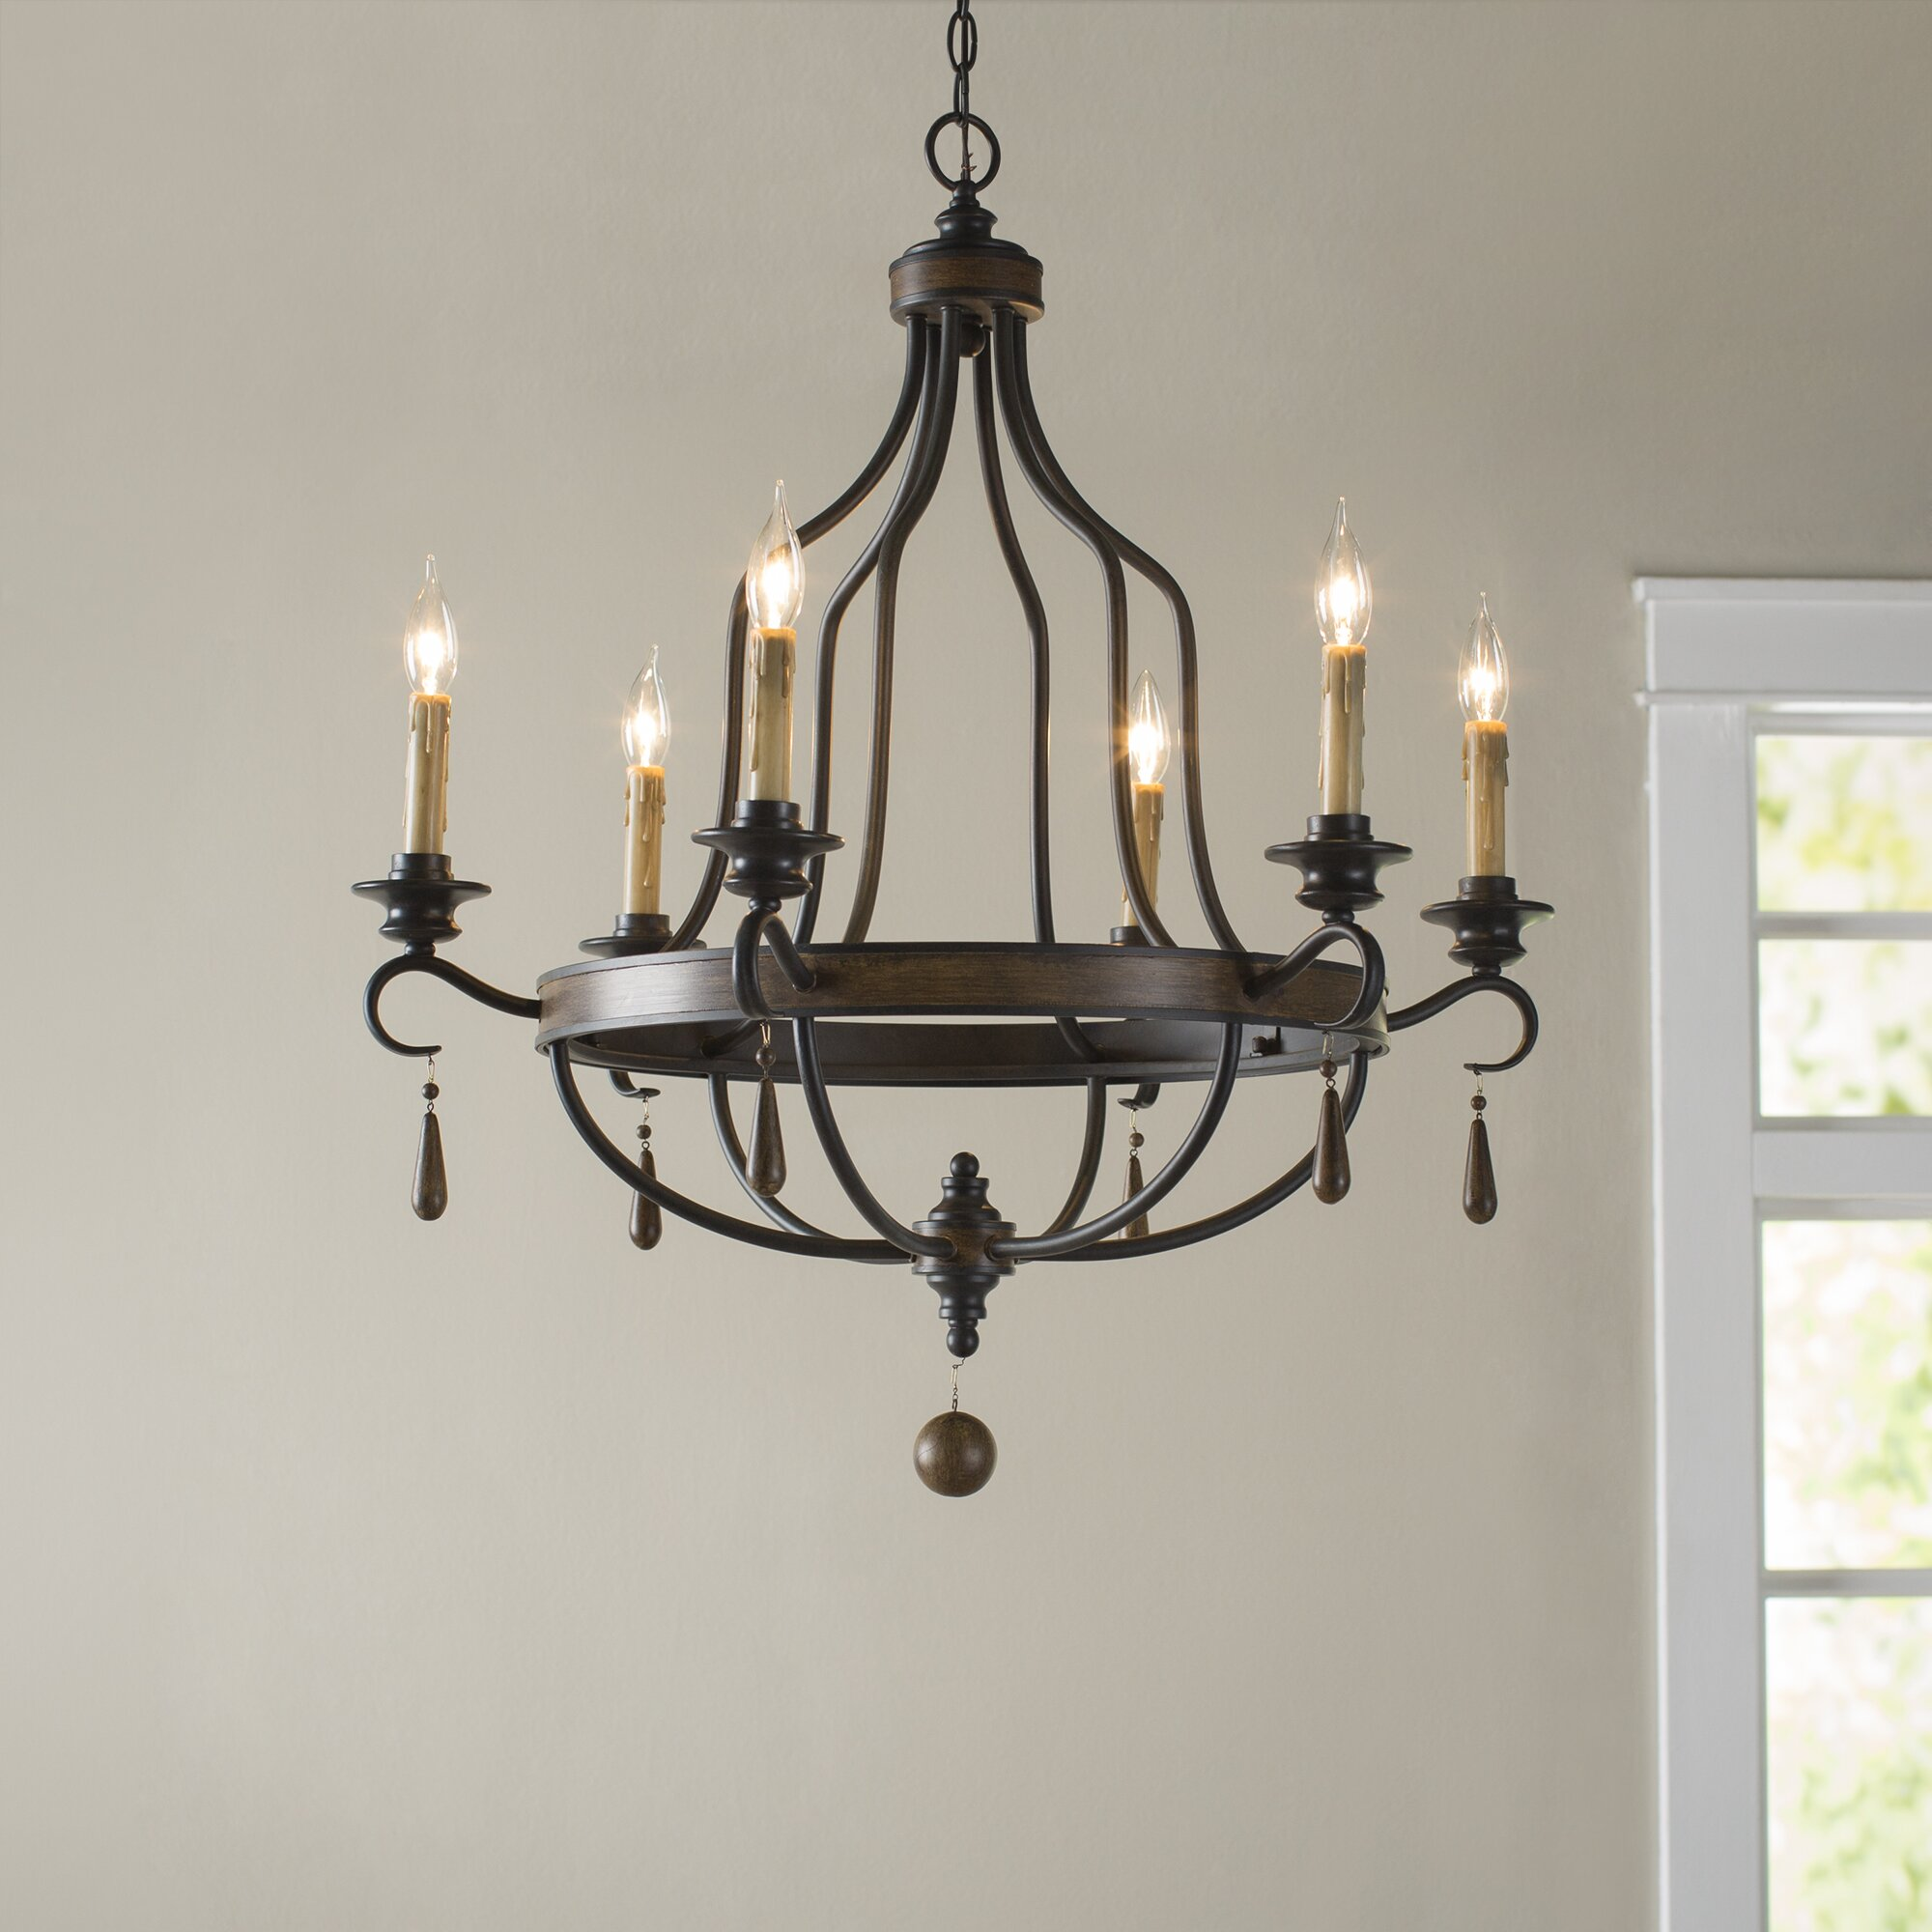 Birch lane coningsby 6 light candle style chandelier for C furniture coningsby